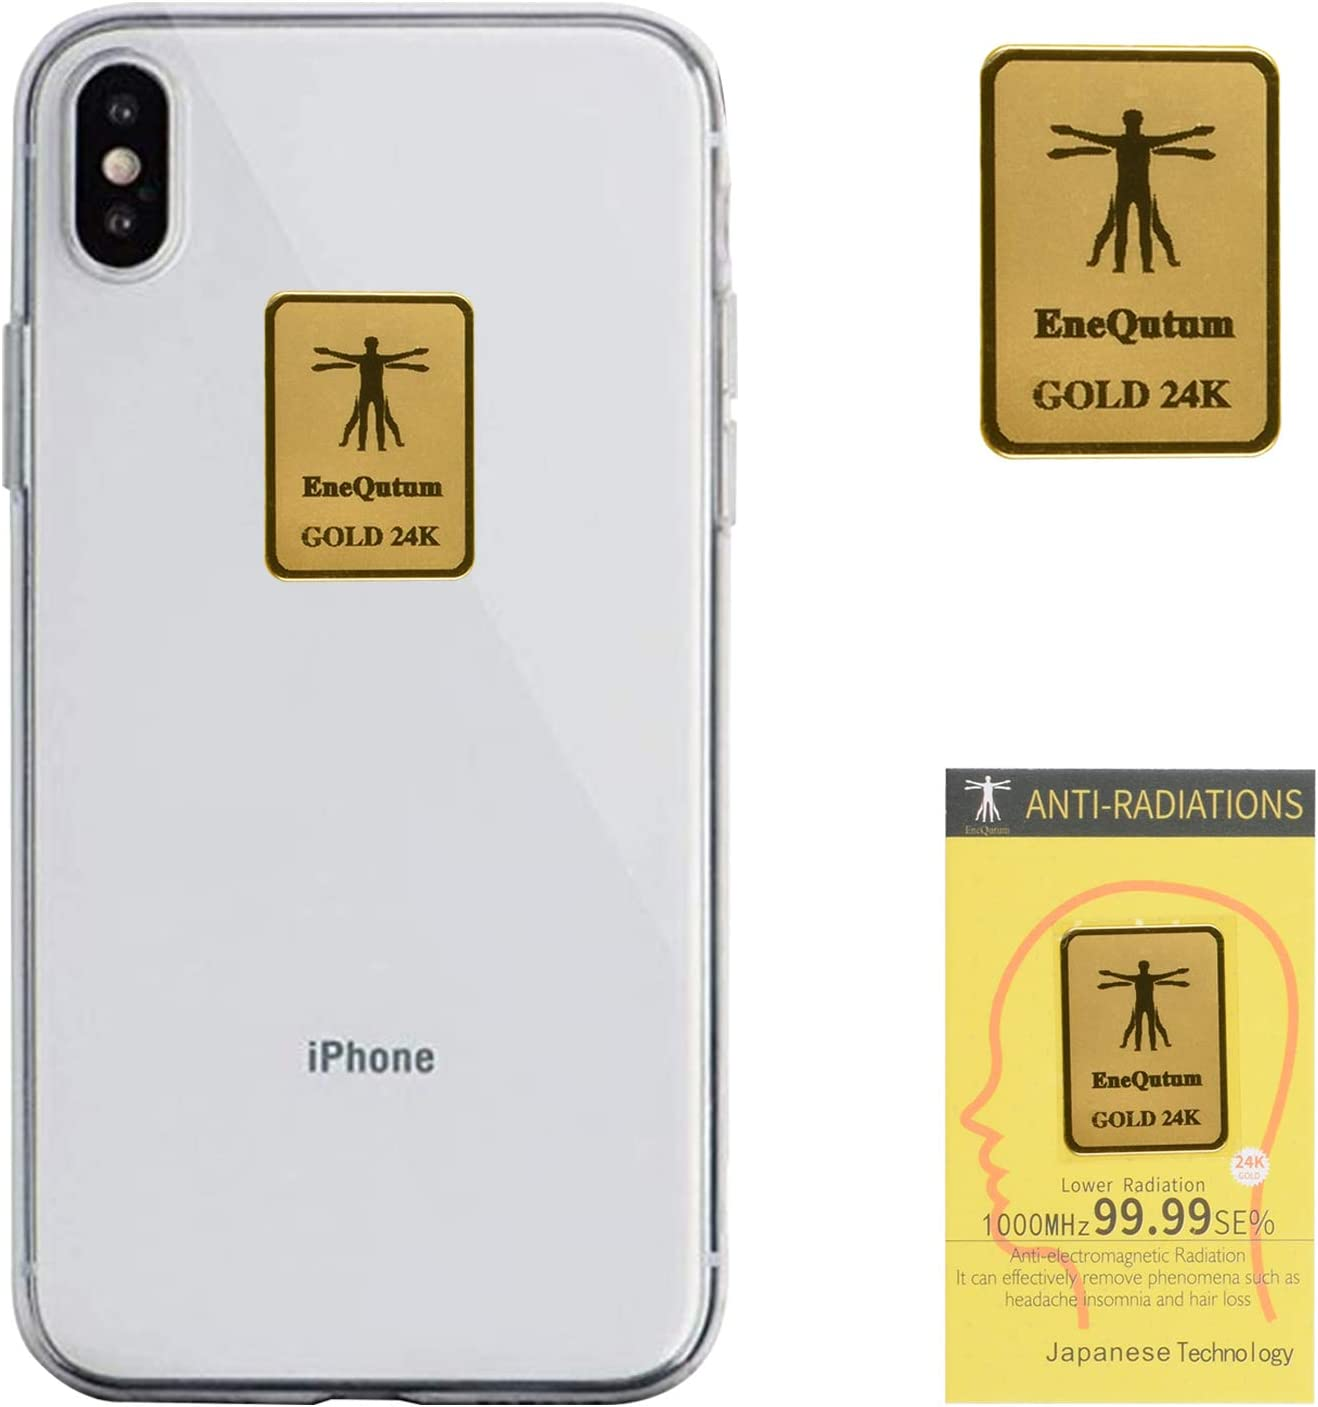 EMF Protection Cell Phone Stickers, EMR Blocker Neutralizer Device, Anti Radiation Protector Shield for All Mobile Phones, iPad iPod, MacBook, Computer, Laptop(10 Pack)